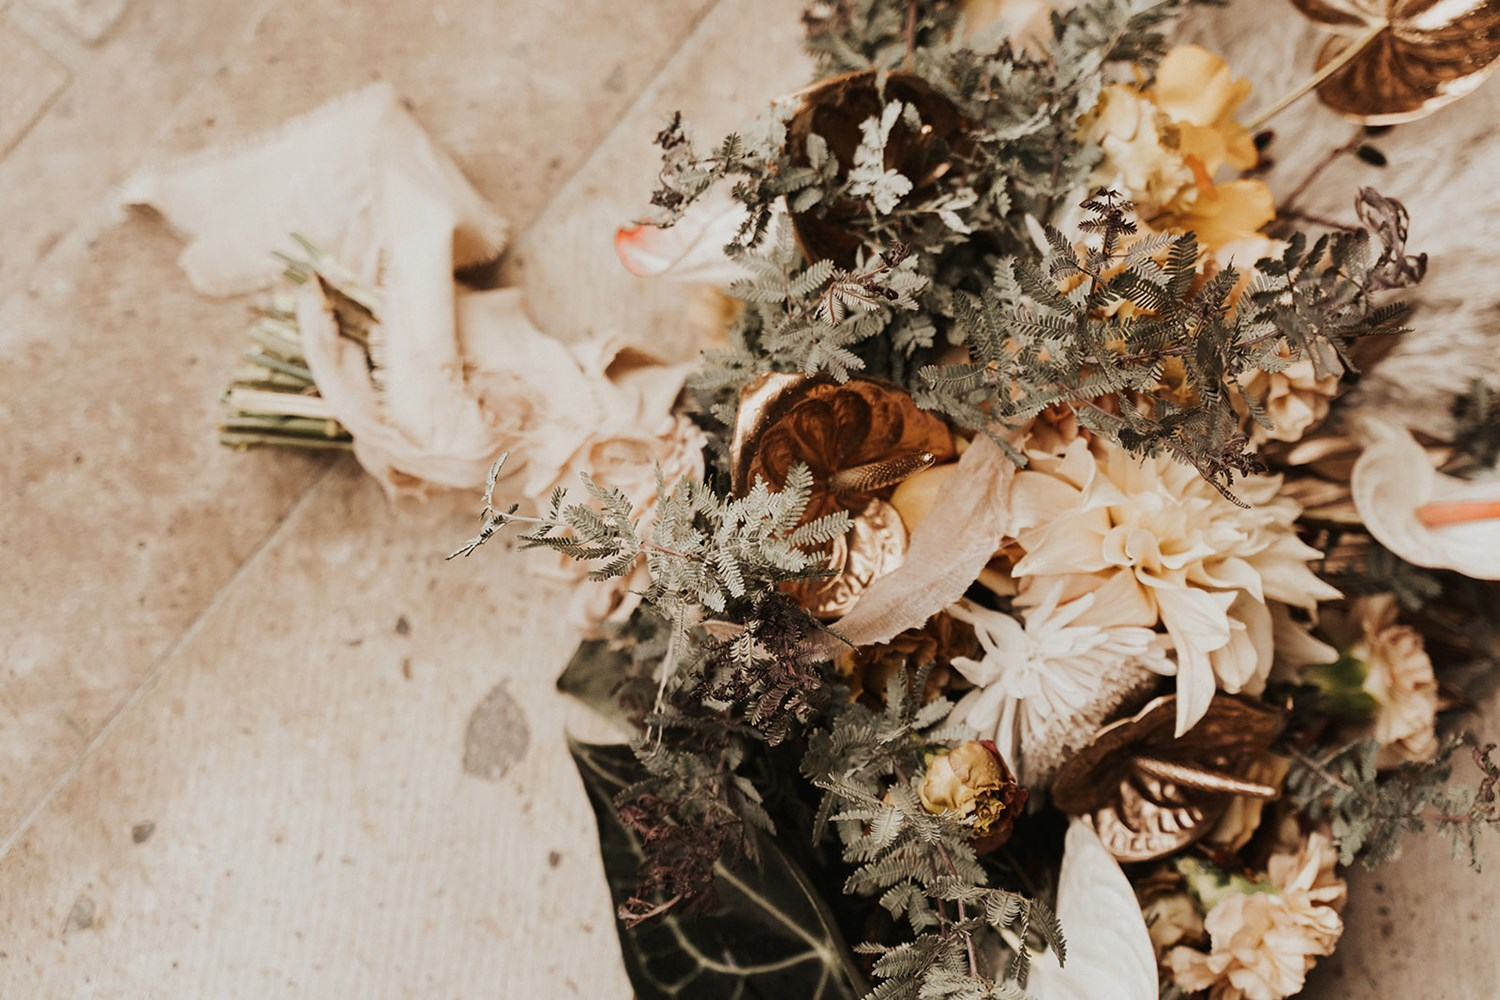 desertshootout_cait_cophoto-0101.jpg Bohemian Palm Springs Wedding Inspiration with a Modern Twist